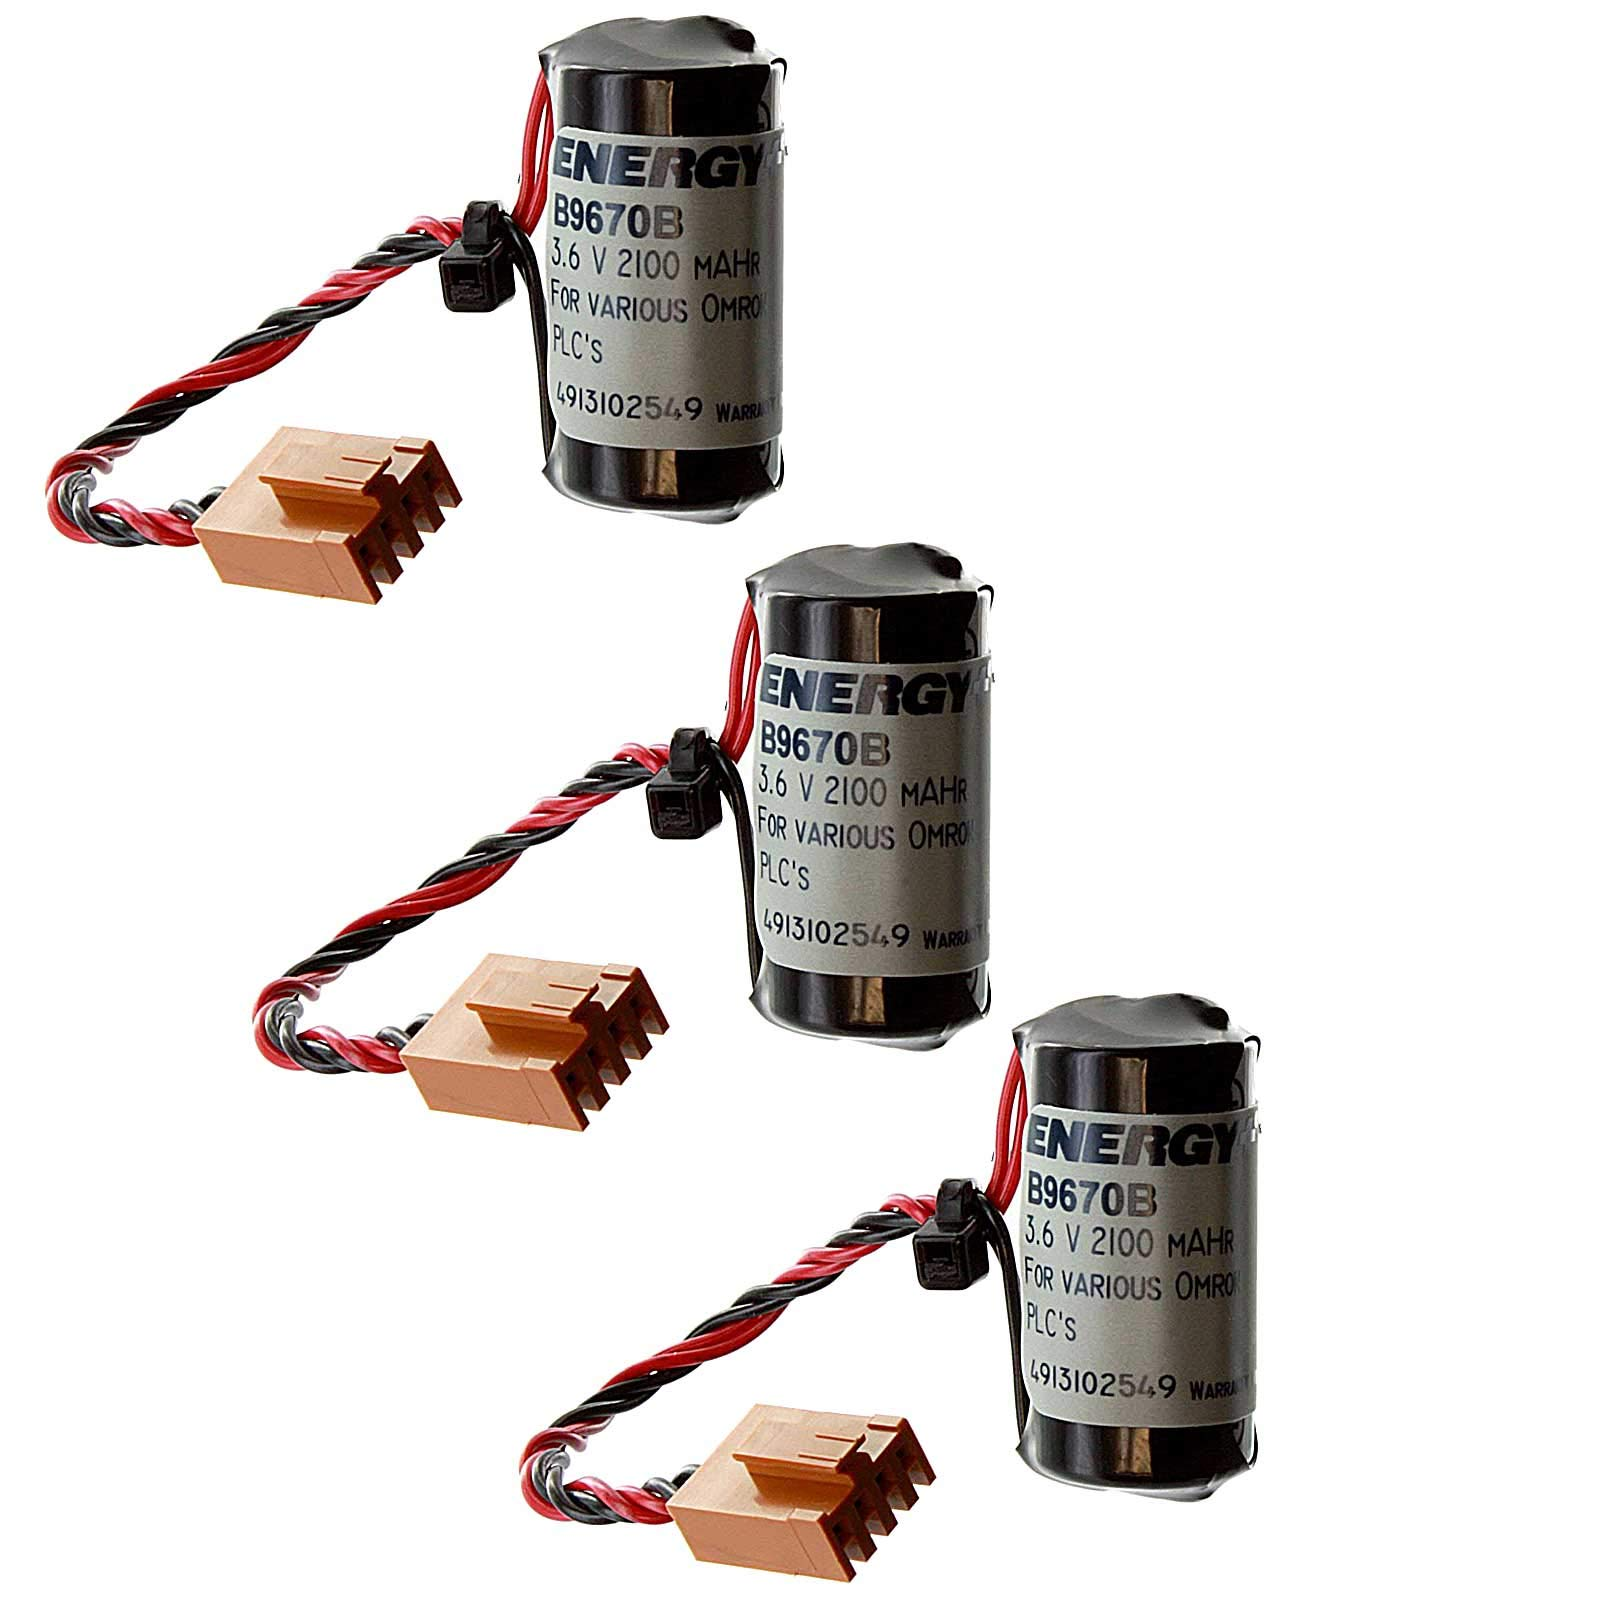 3x PLC 3V 1800mAh Eternacell Energy+ Replacement Battery for B9670AB FAST SHIP